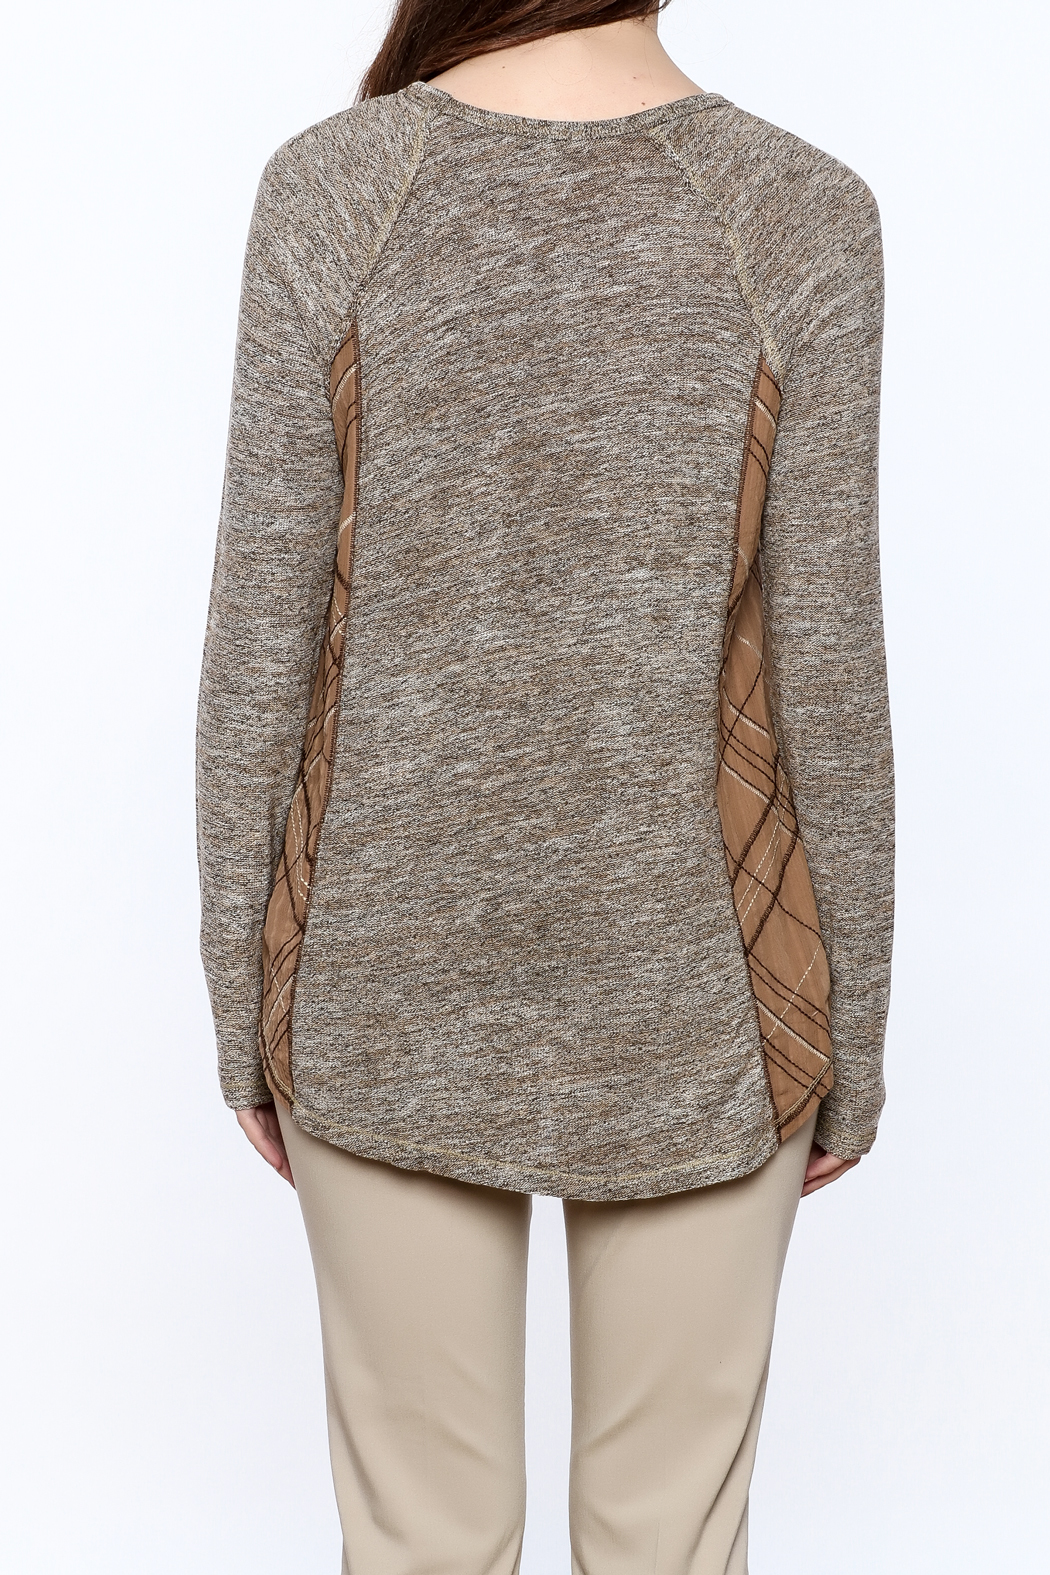 Mystree Grey Knit Top - Back Cropped Image